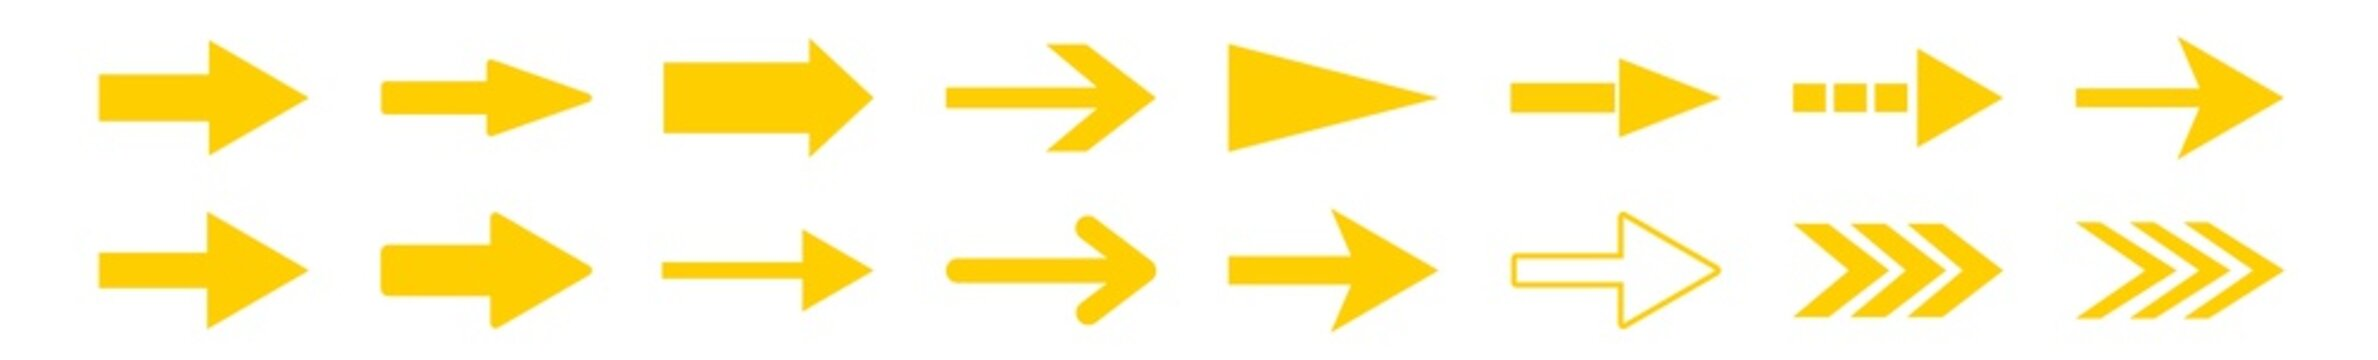 Arrow Icon Yellow | Arrows | Infographic Illustration | Direction Symbol | Pointer Logo | Up Sign | Isolated | Variations